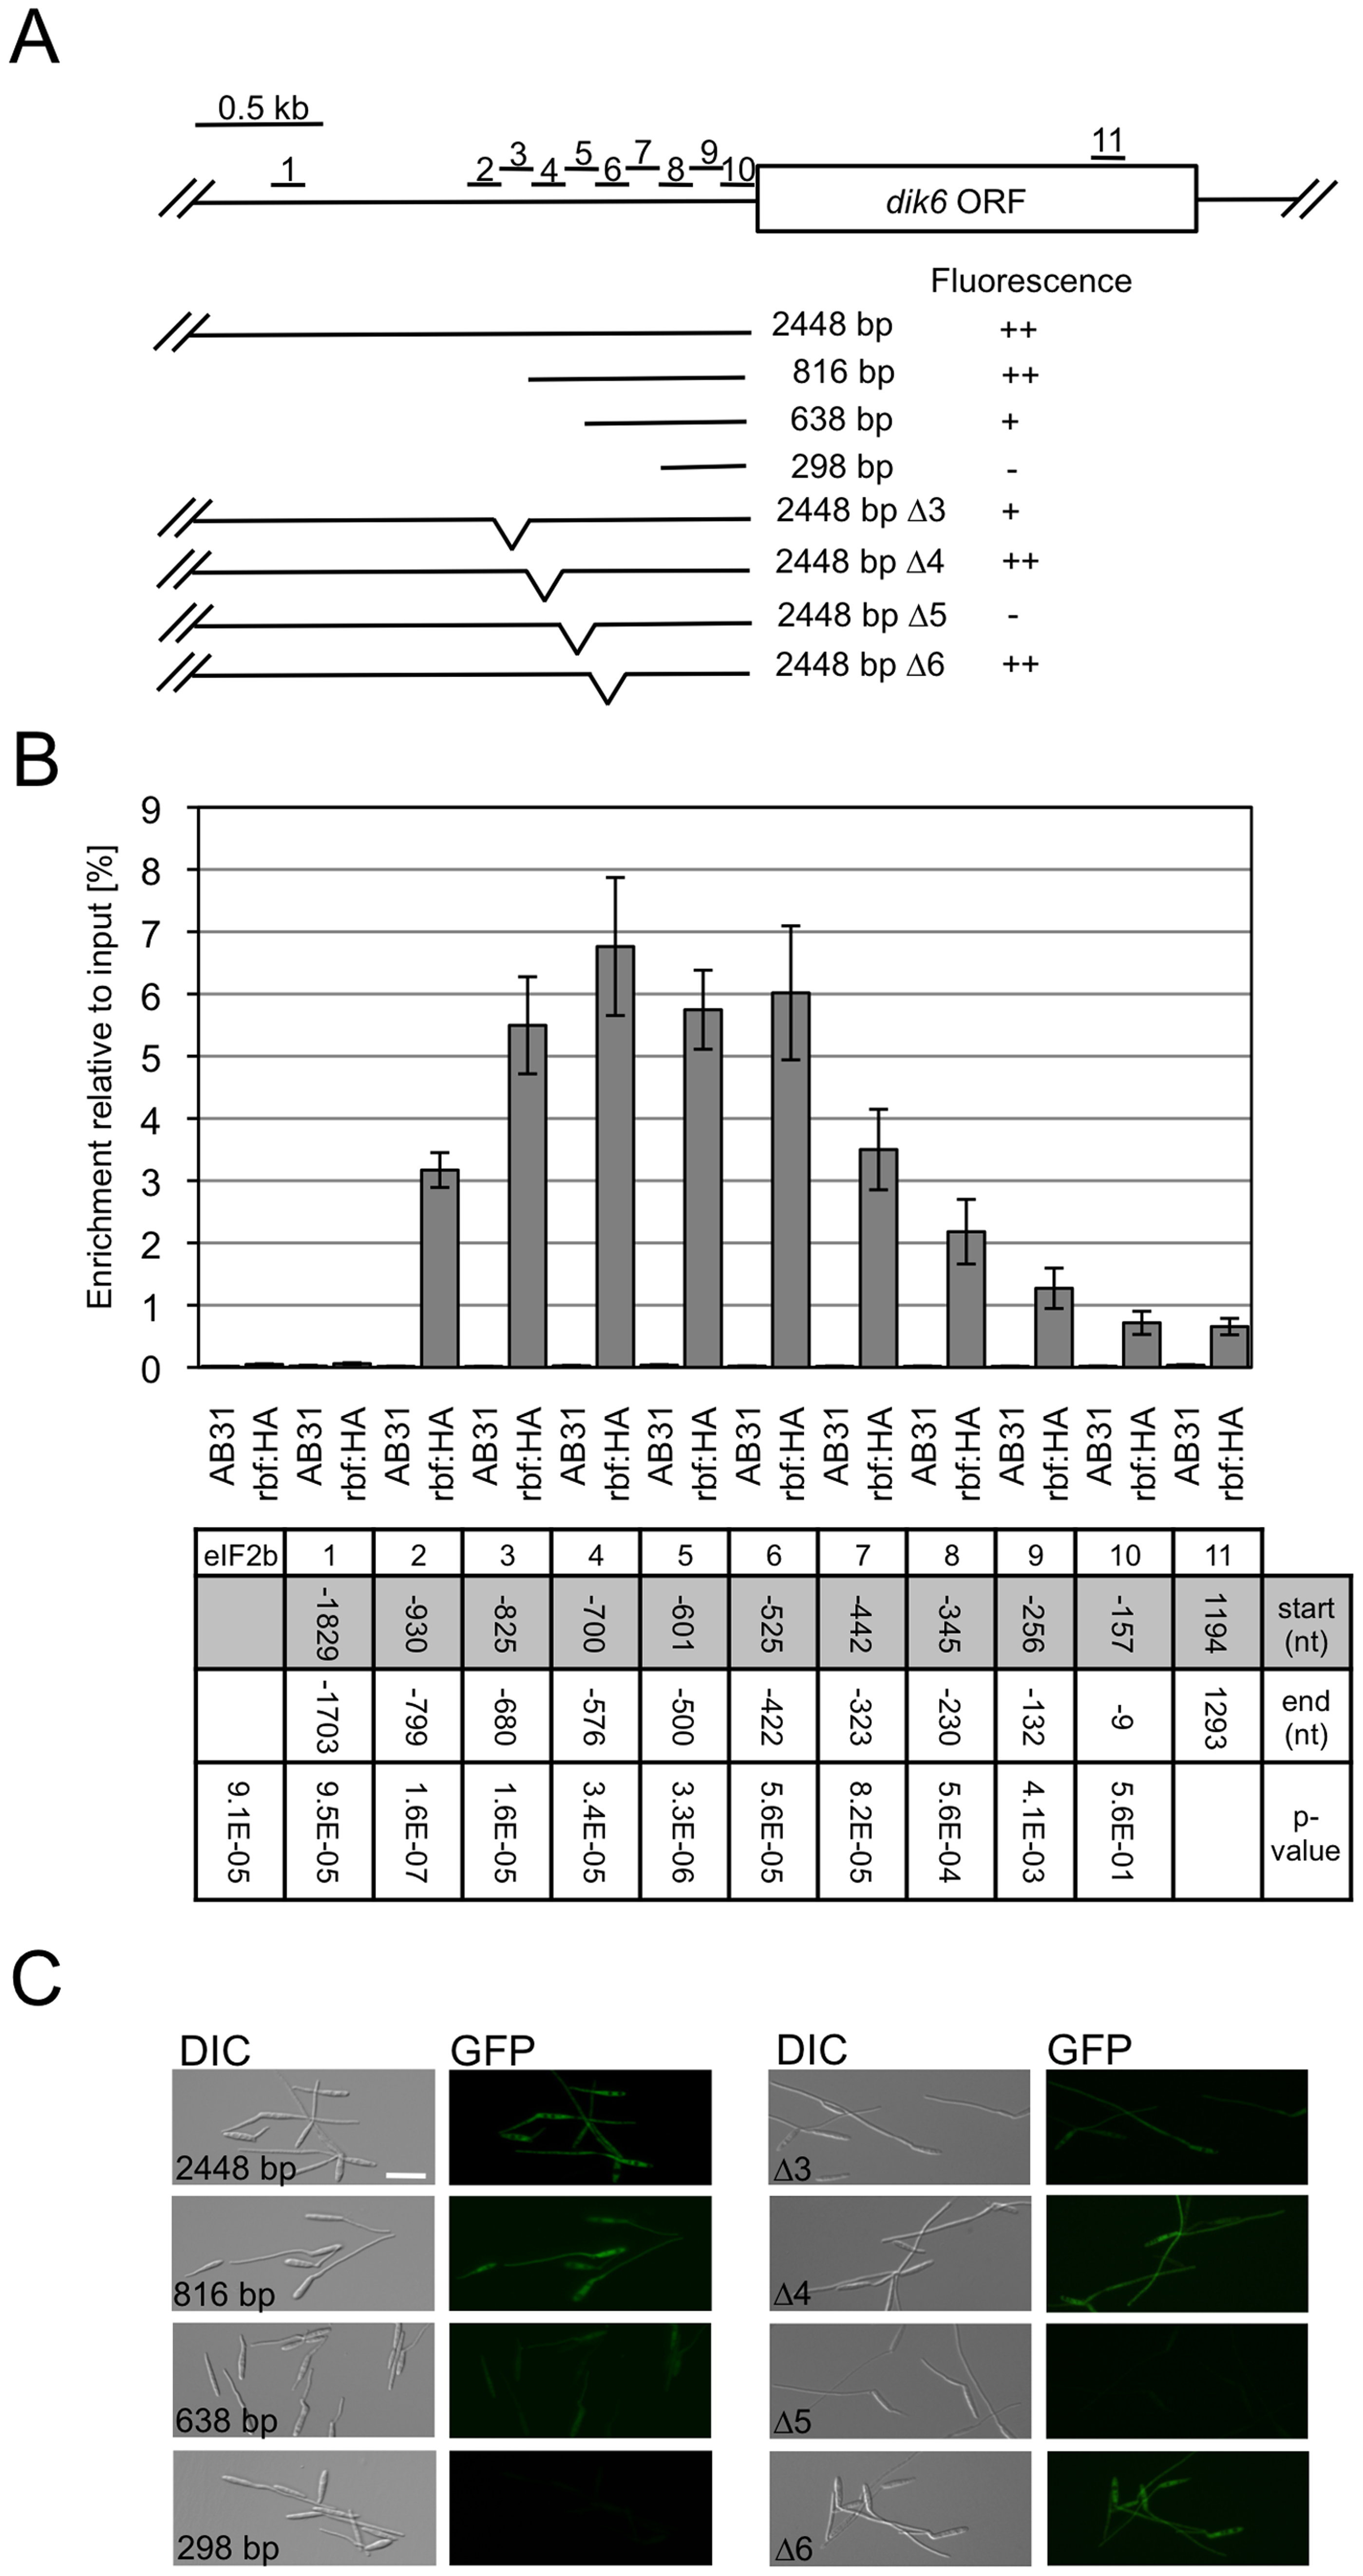 Rbf1 binds to the promoter of the Rbf1-dependently expressed <i>dik6</i> gene.